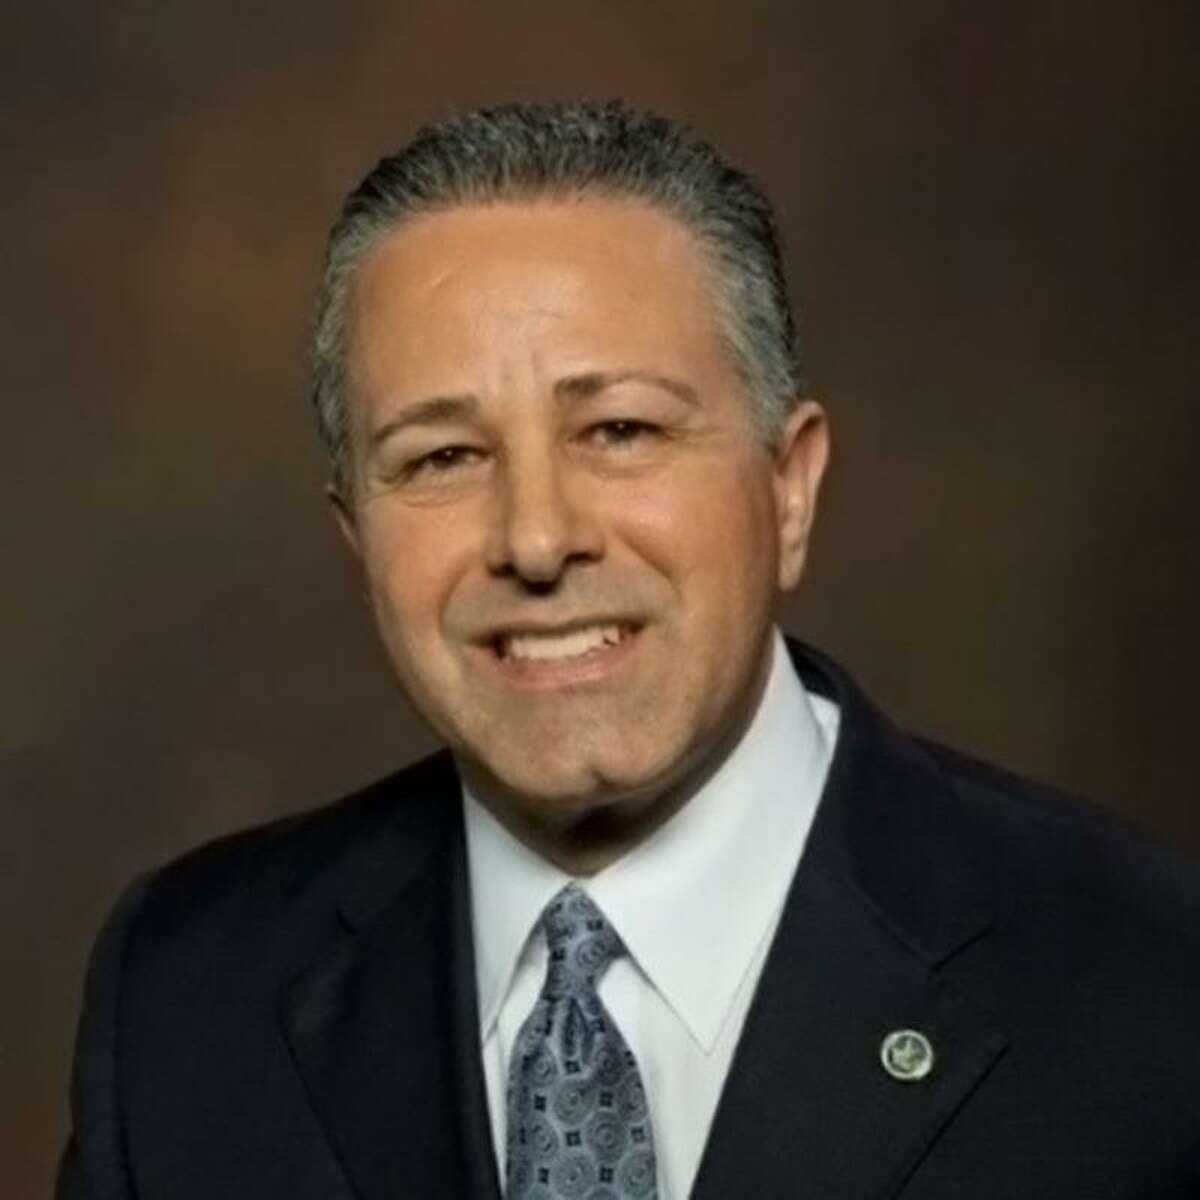 Orlando Sanchez, former deputy city manager for Las Vegas and finalist for the city manager for San Antonio.